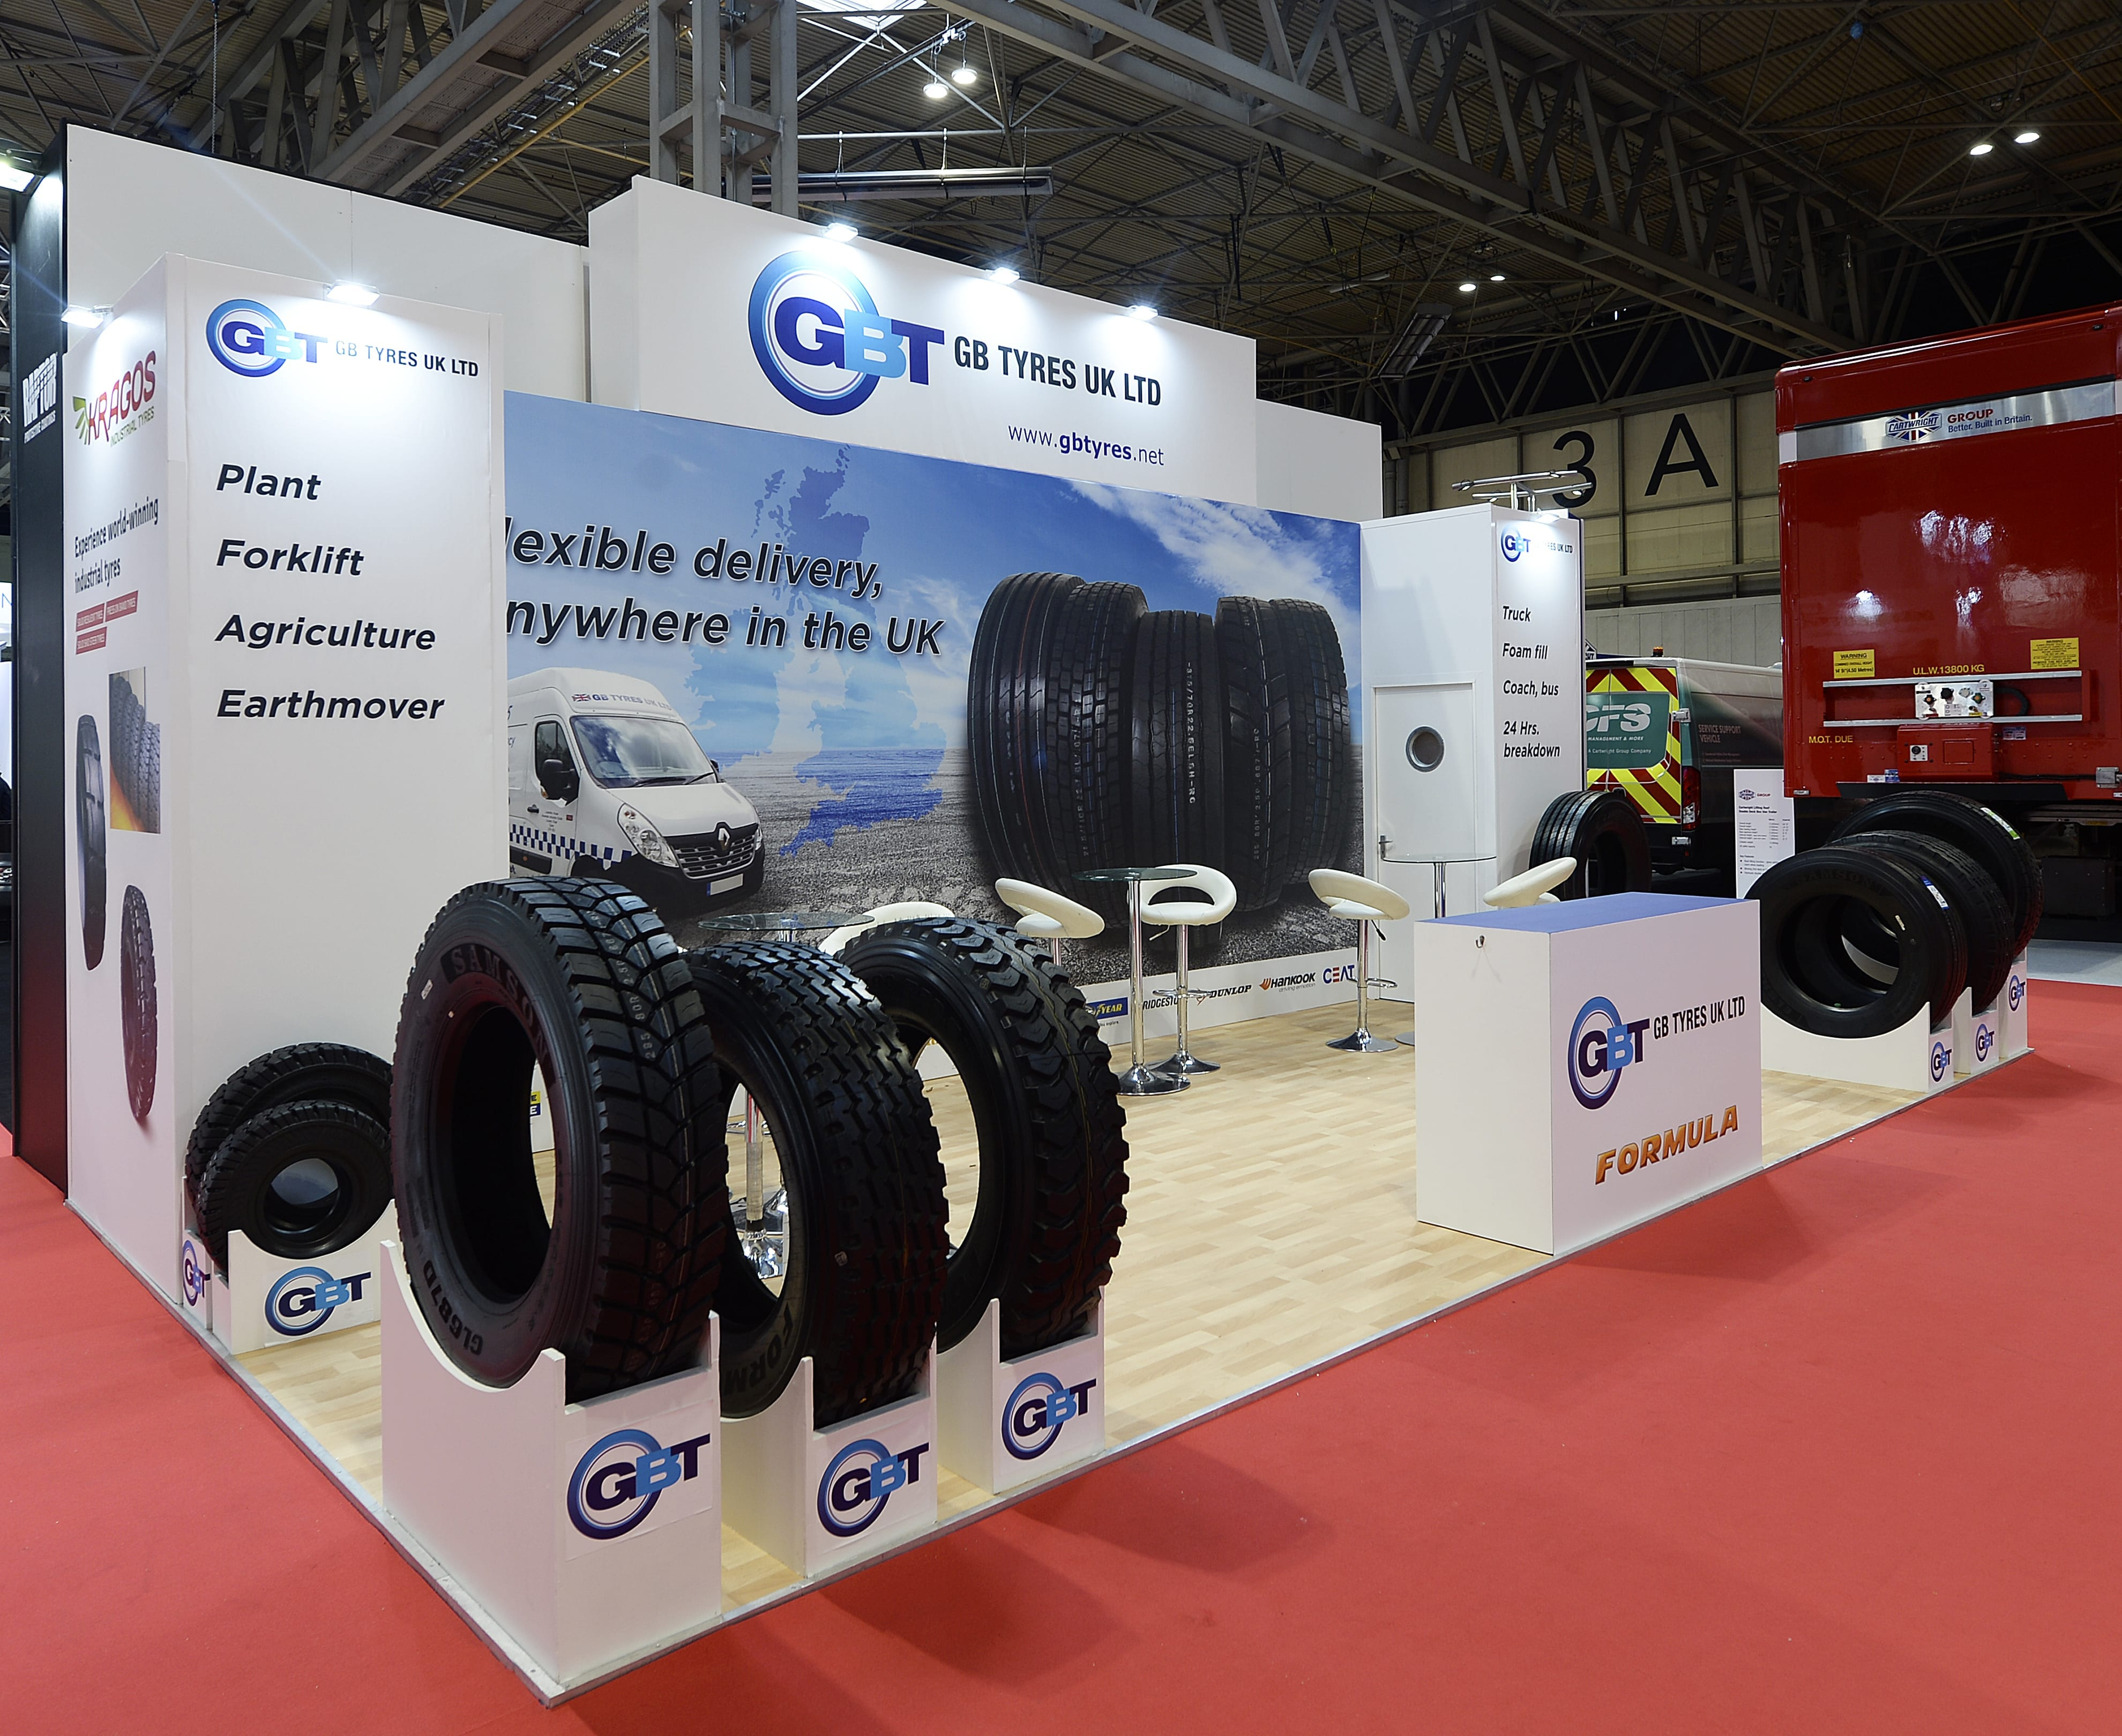 GB Tyres UK Ltd are fast growing Tyre